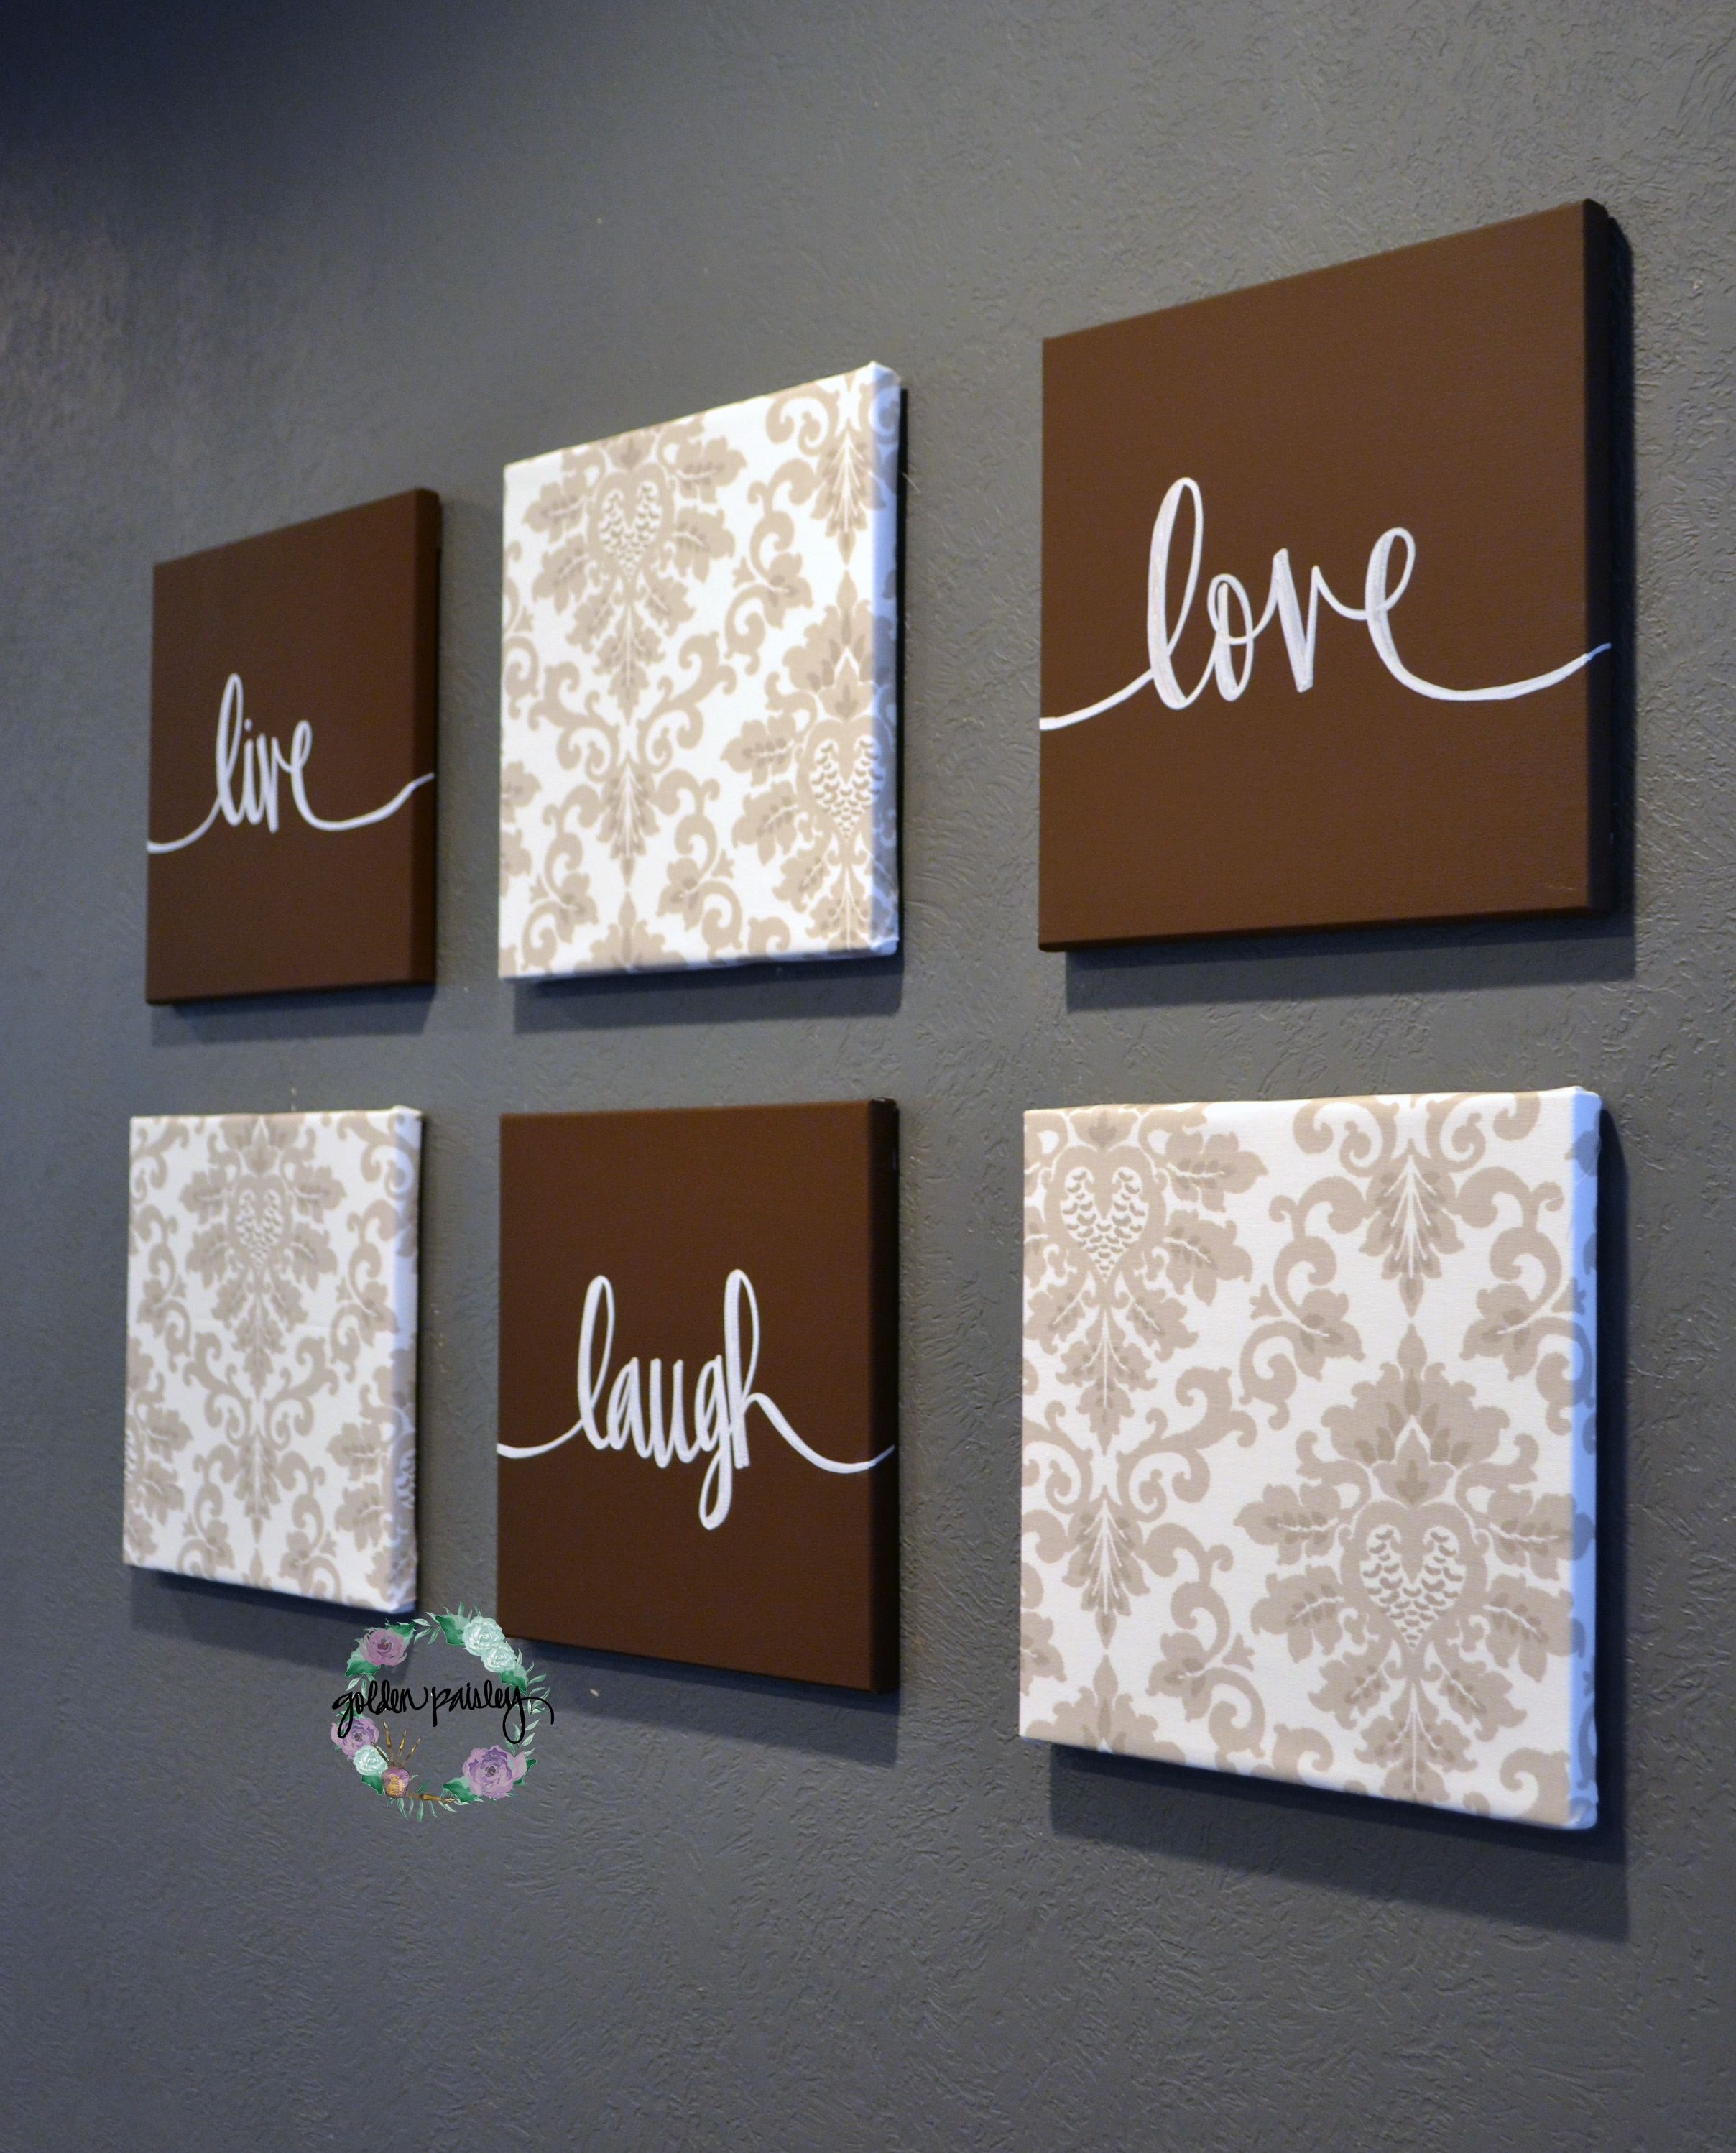 Brown Beige Live Laugh Love Set Intended For Newest Live Laugh Love Canvas Wall Art (View 3 of 15)